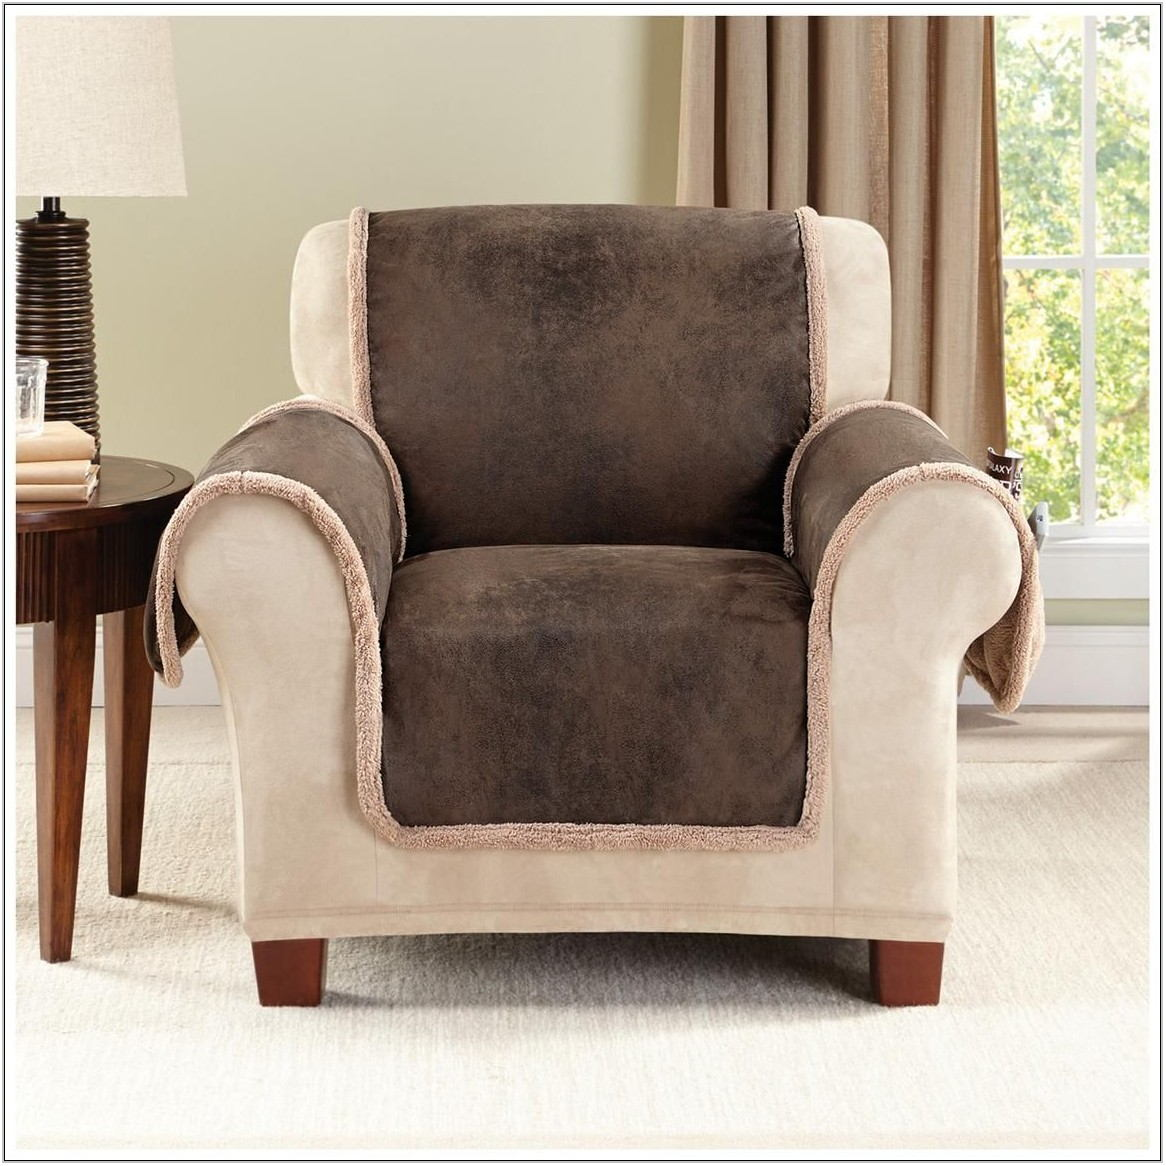 Living Room Chair Arm Covers